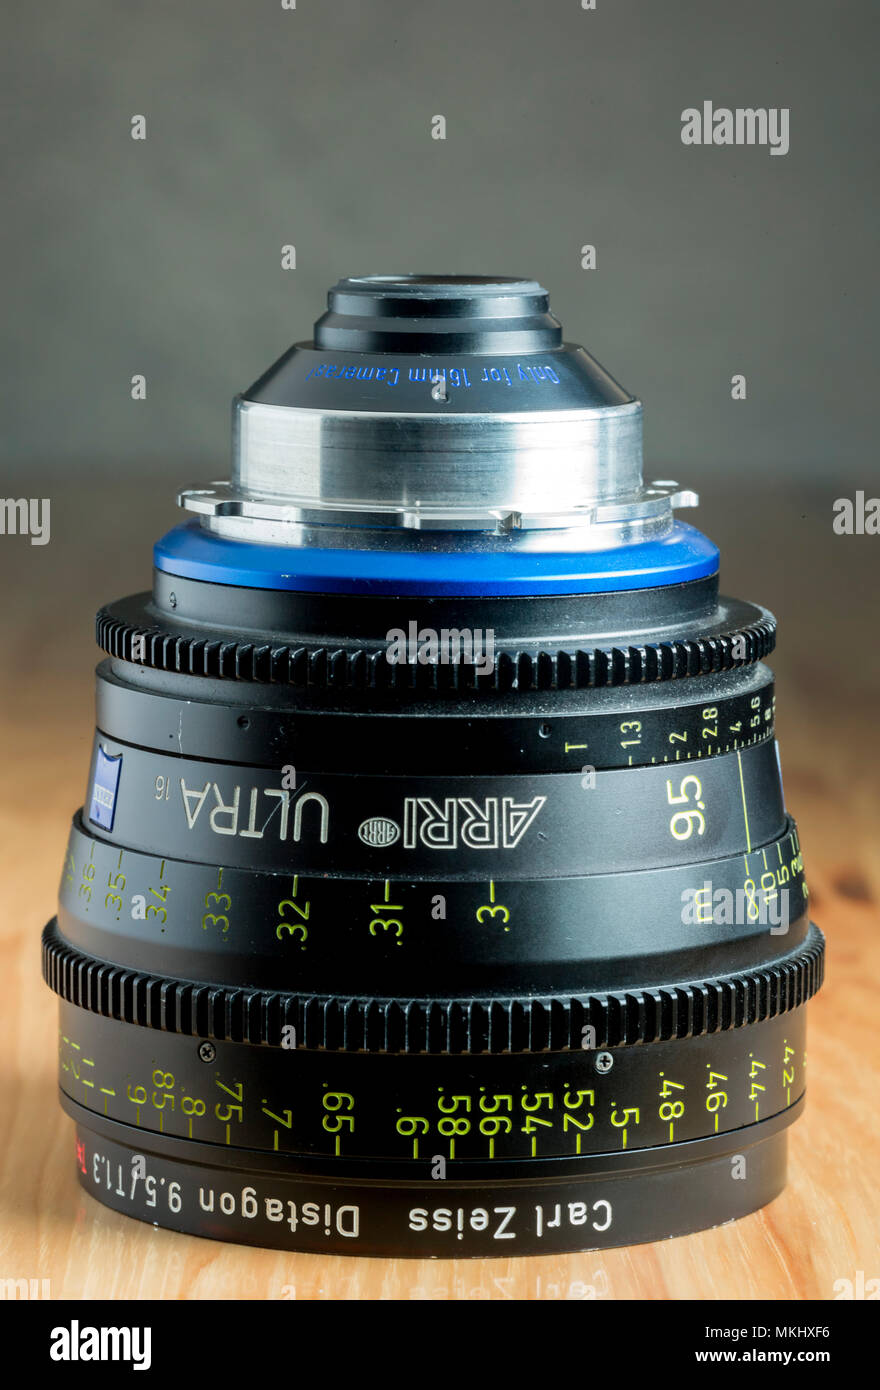 High quality Arri Zeiss Ultra 16  9.5mm T1.3 PL mount lens for use in film and video production. - Stock Image